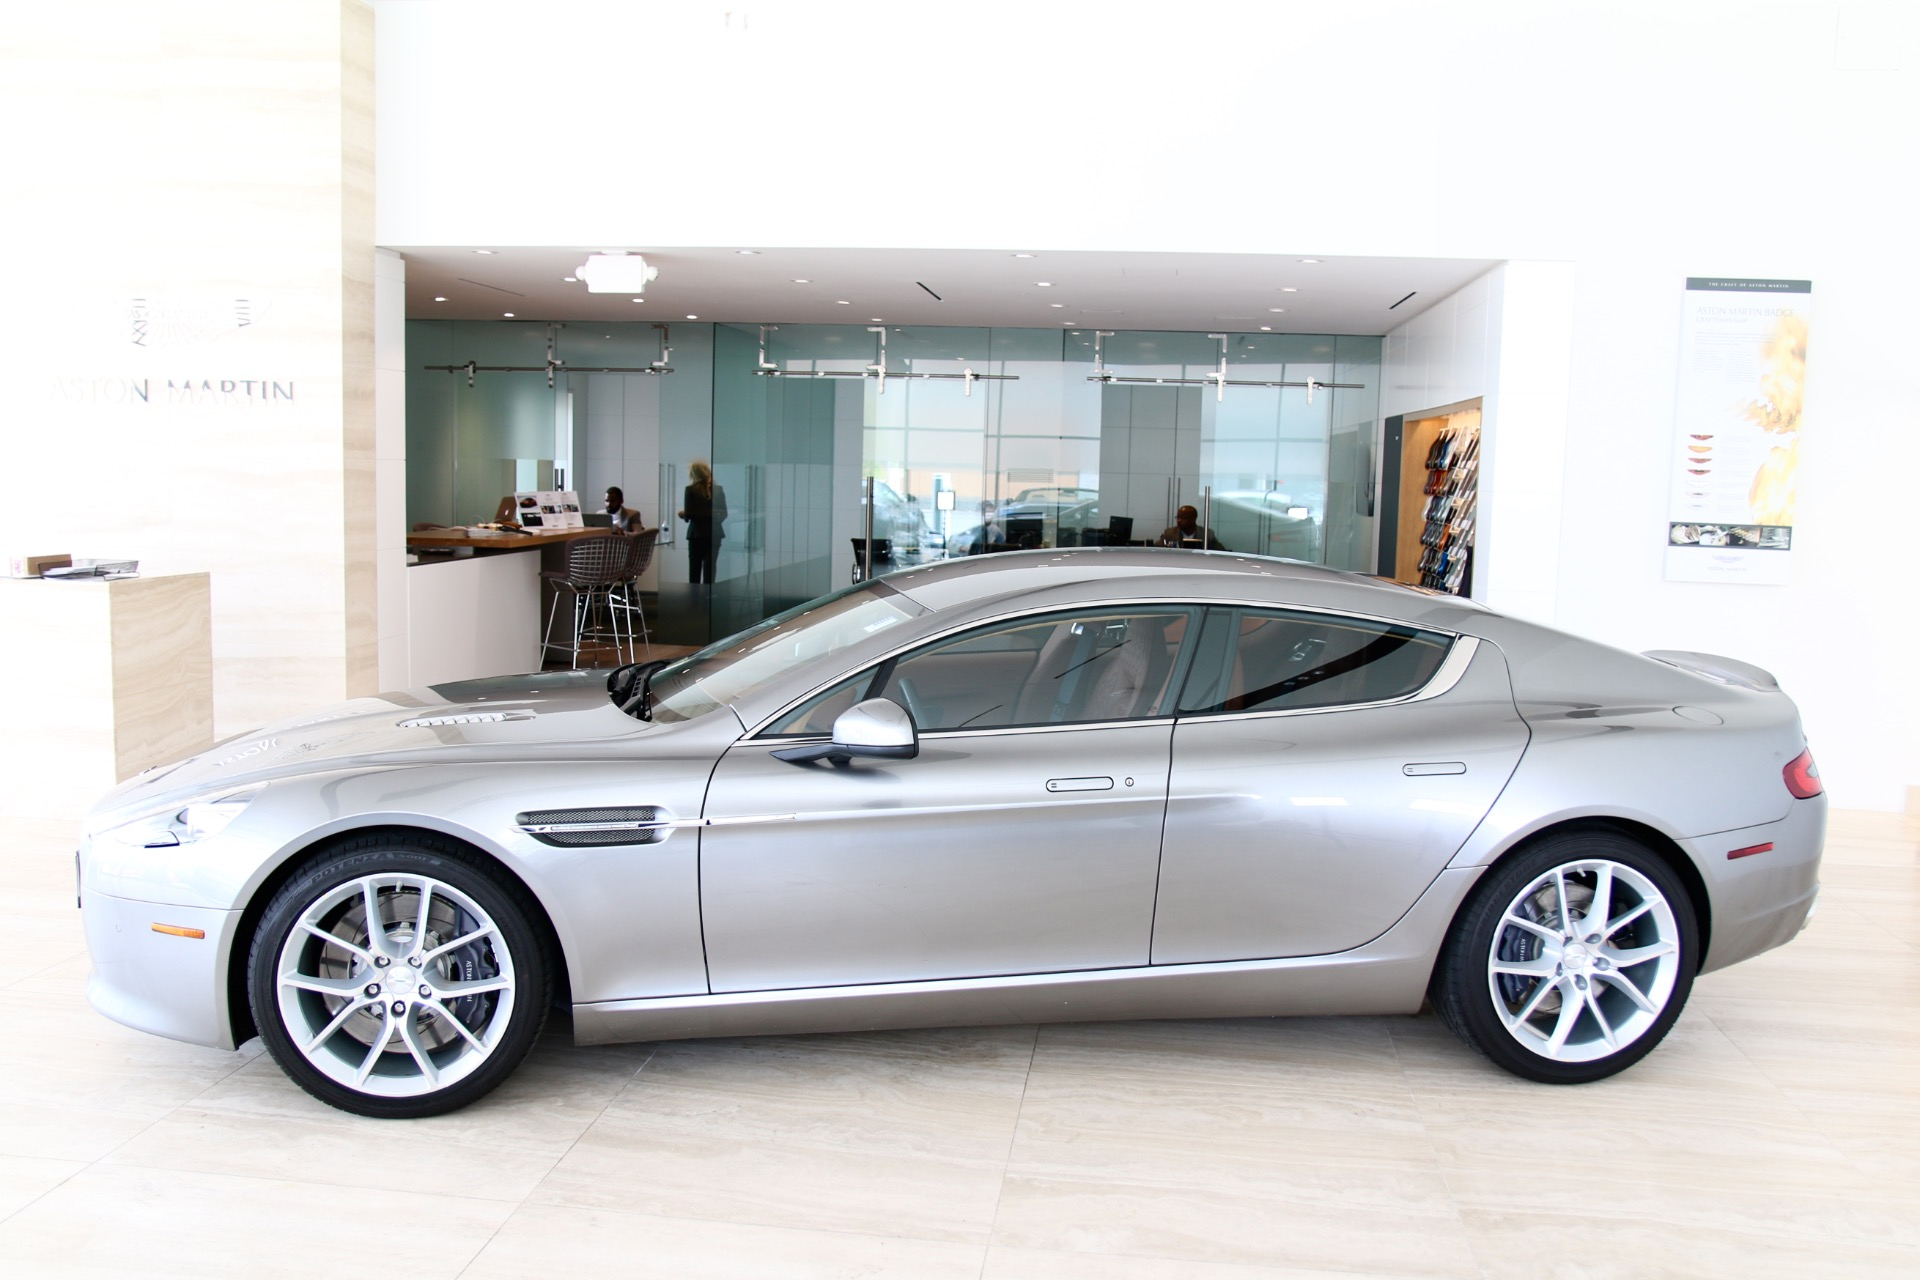 2017 Aston Martin Rapide S Stock # 7GF05728 for sale near Vienna ...